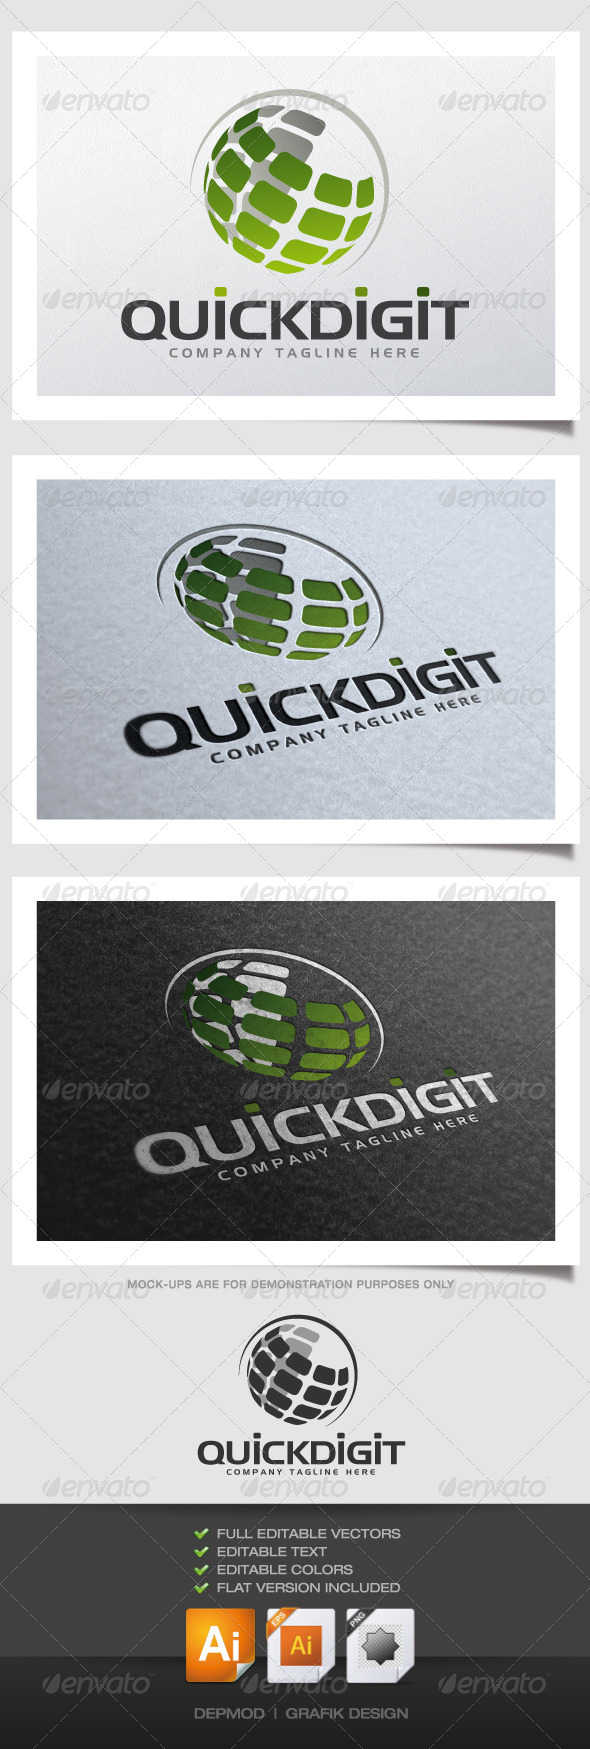 GraphicRiver Quick Digit Logo 4546928